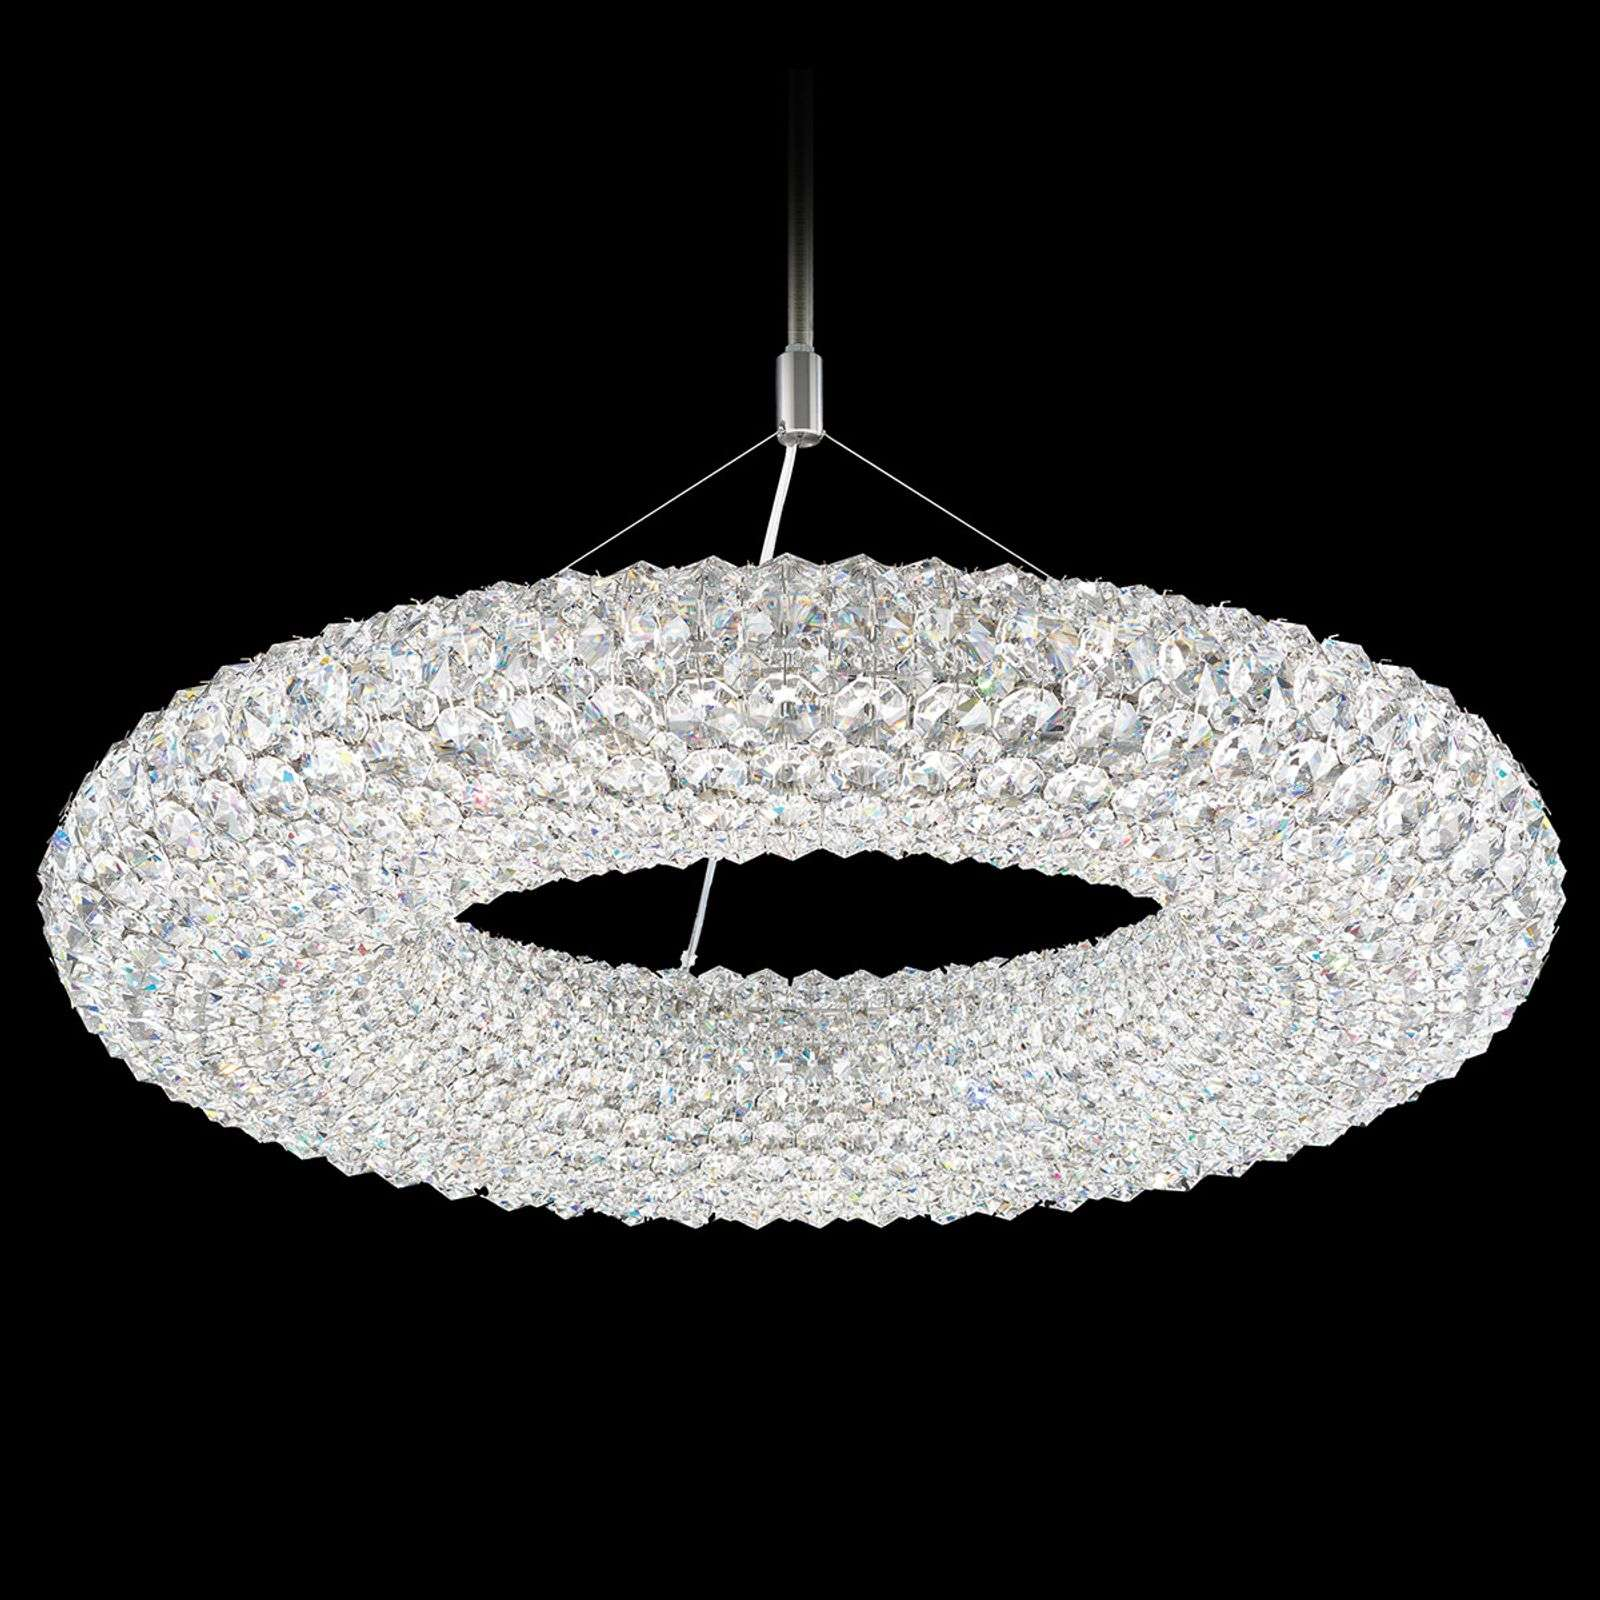 Suspension ronde en cristal Cassini